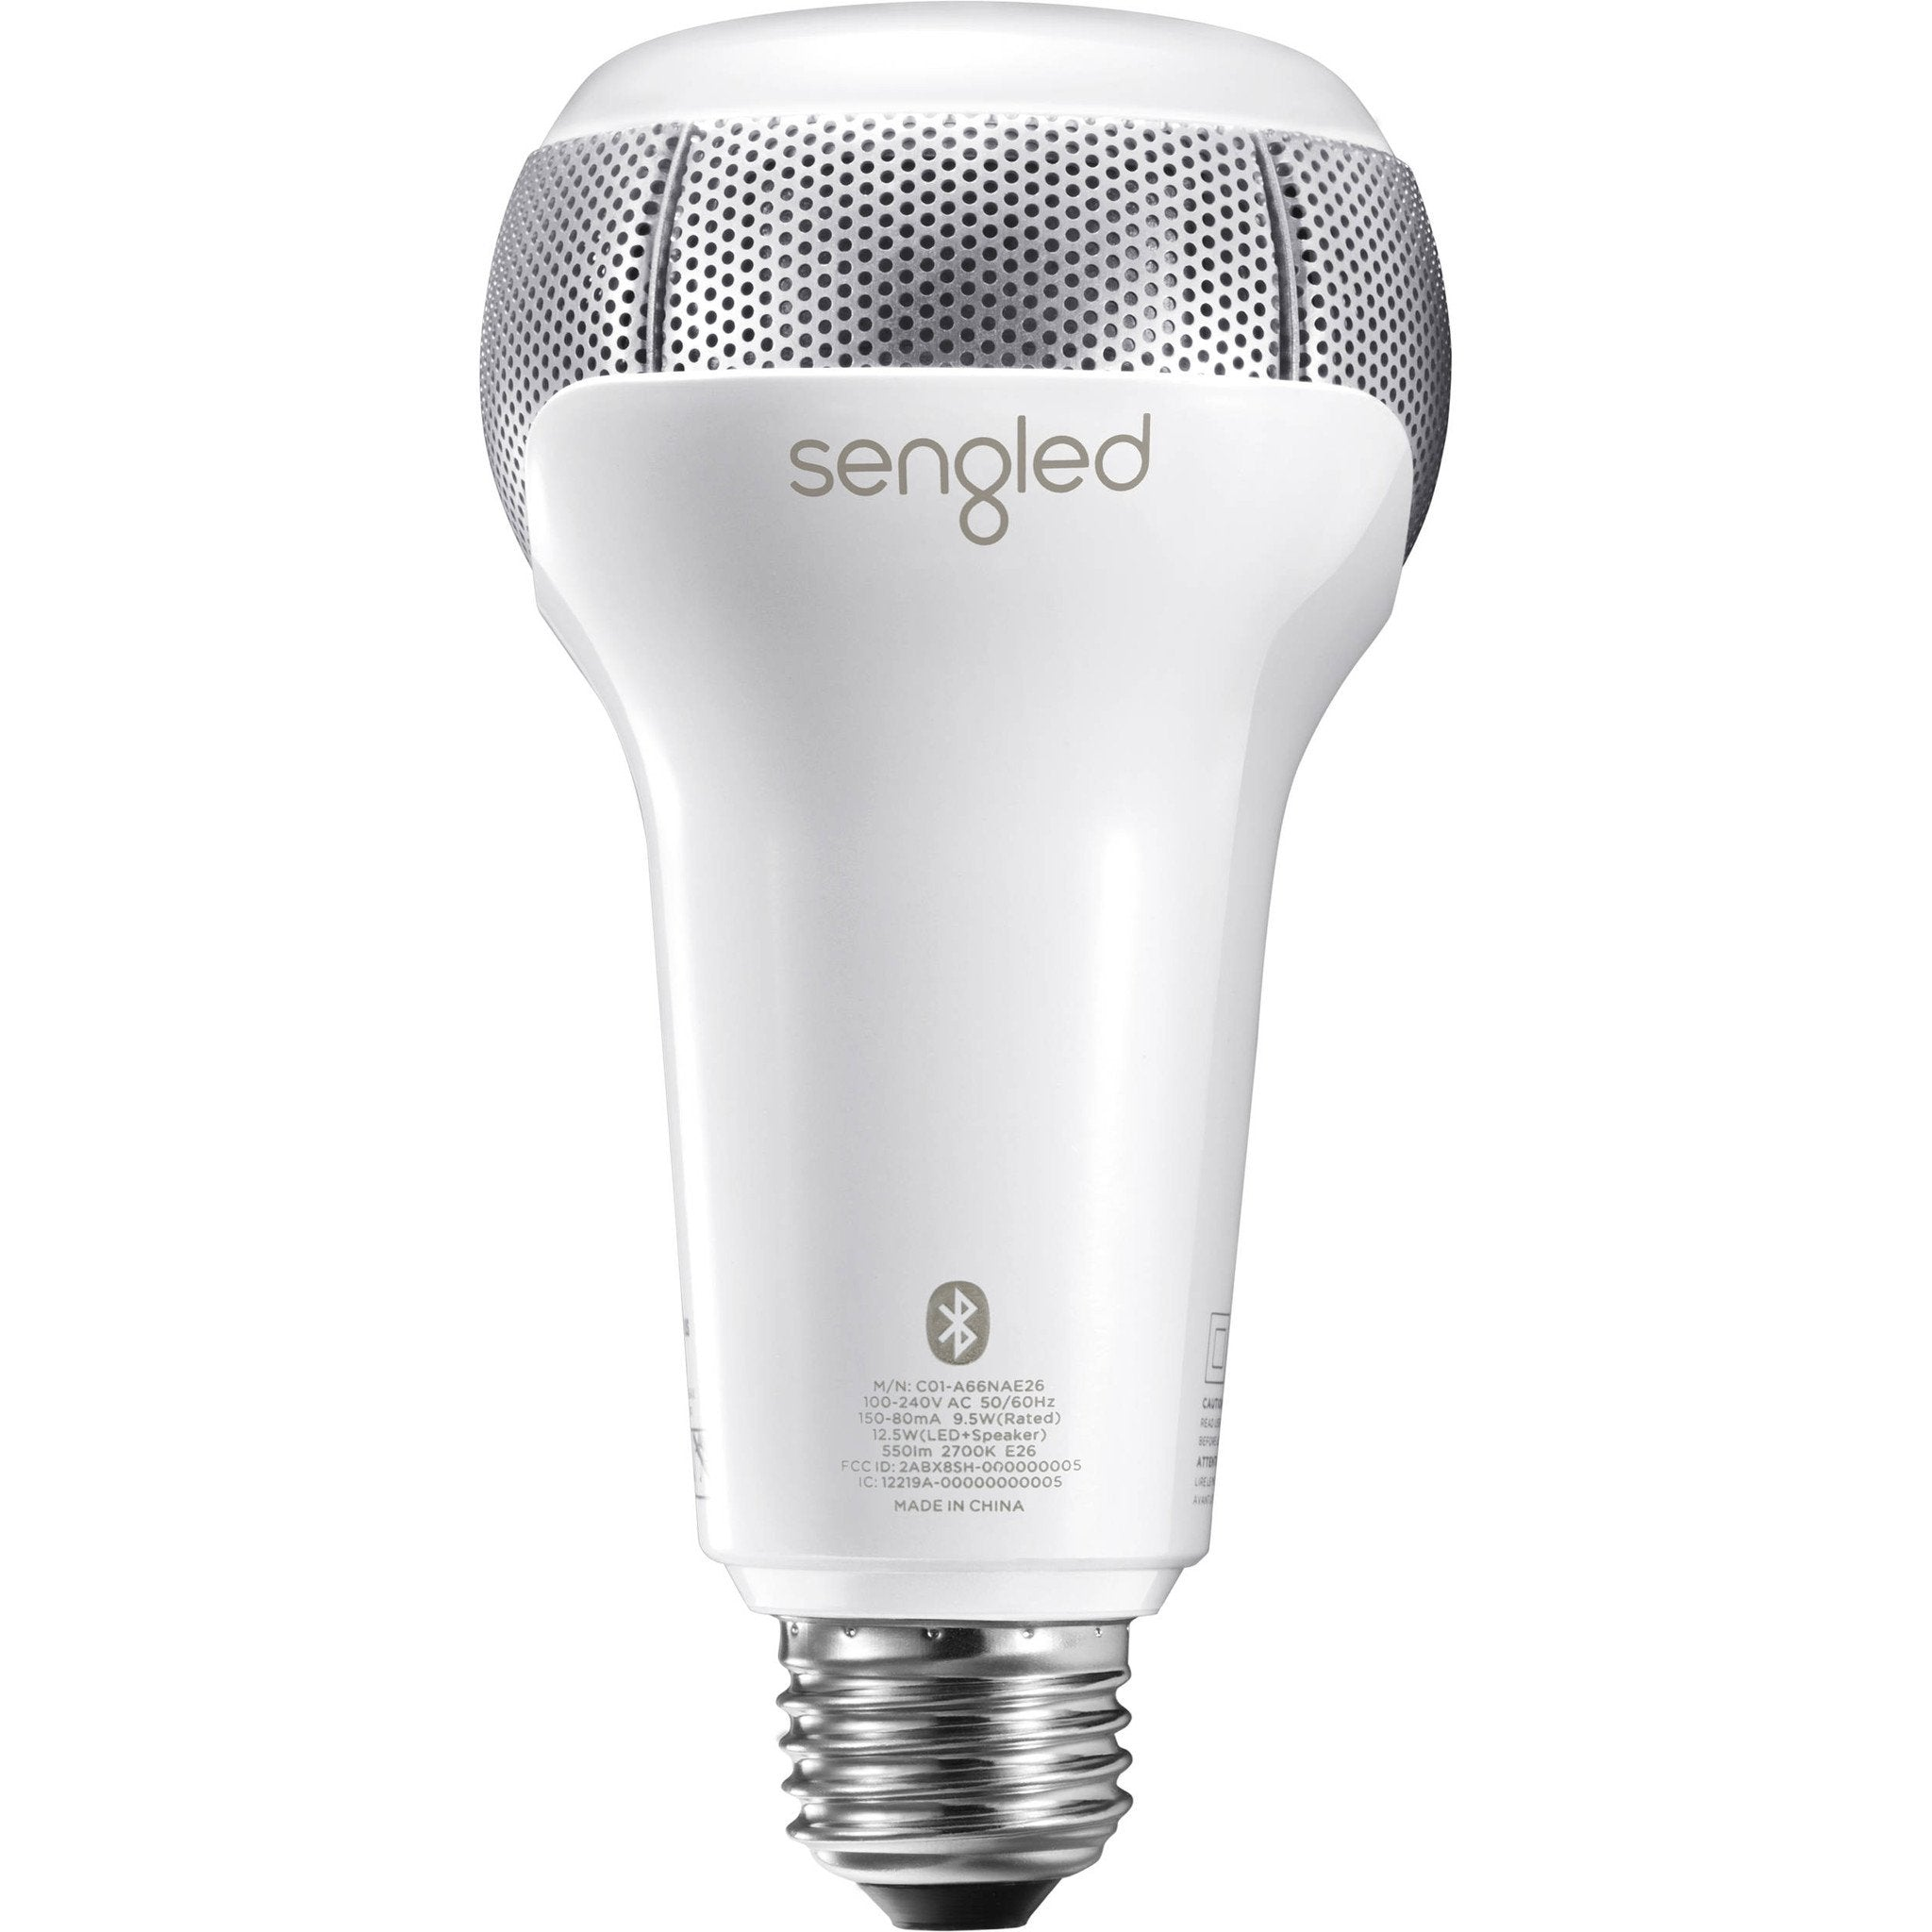 Sengled Pulse Solo LED Light Bulb with Dual Bluetooth Speakers